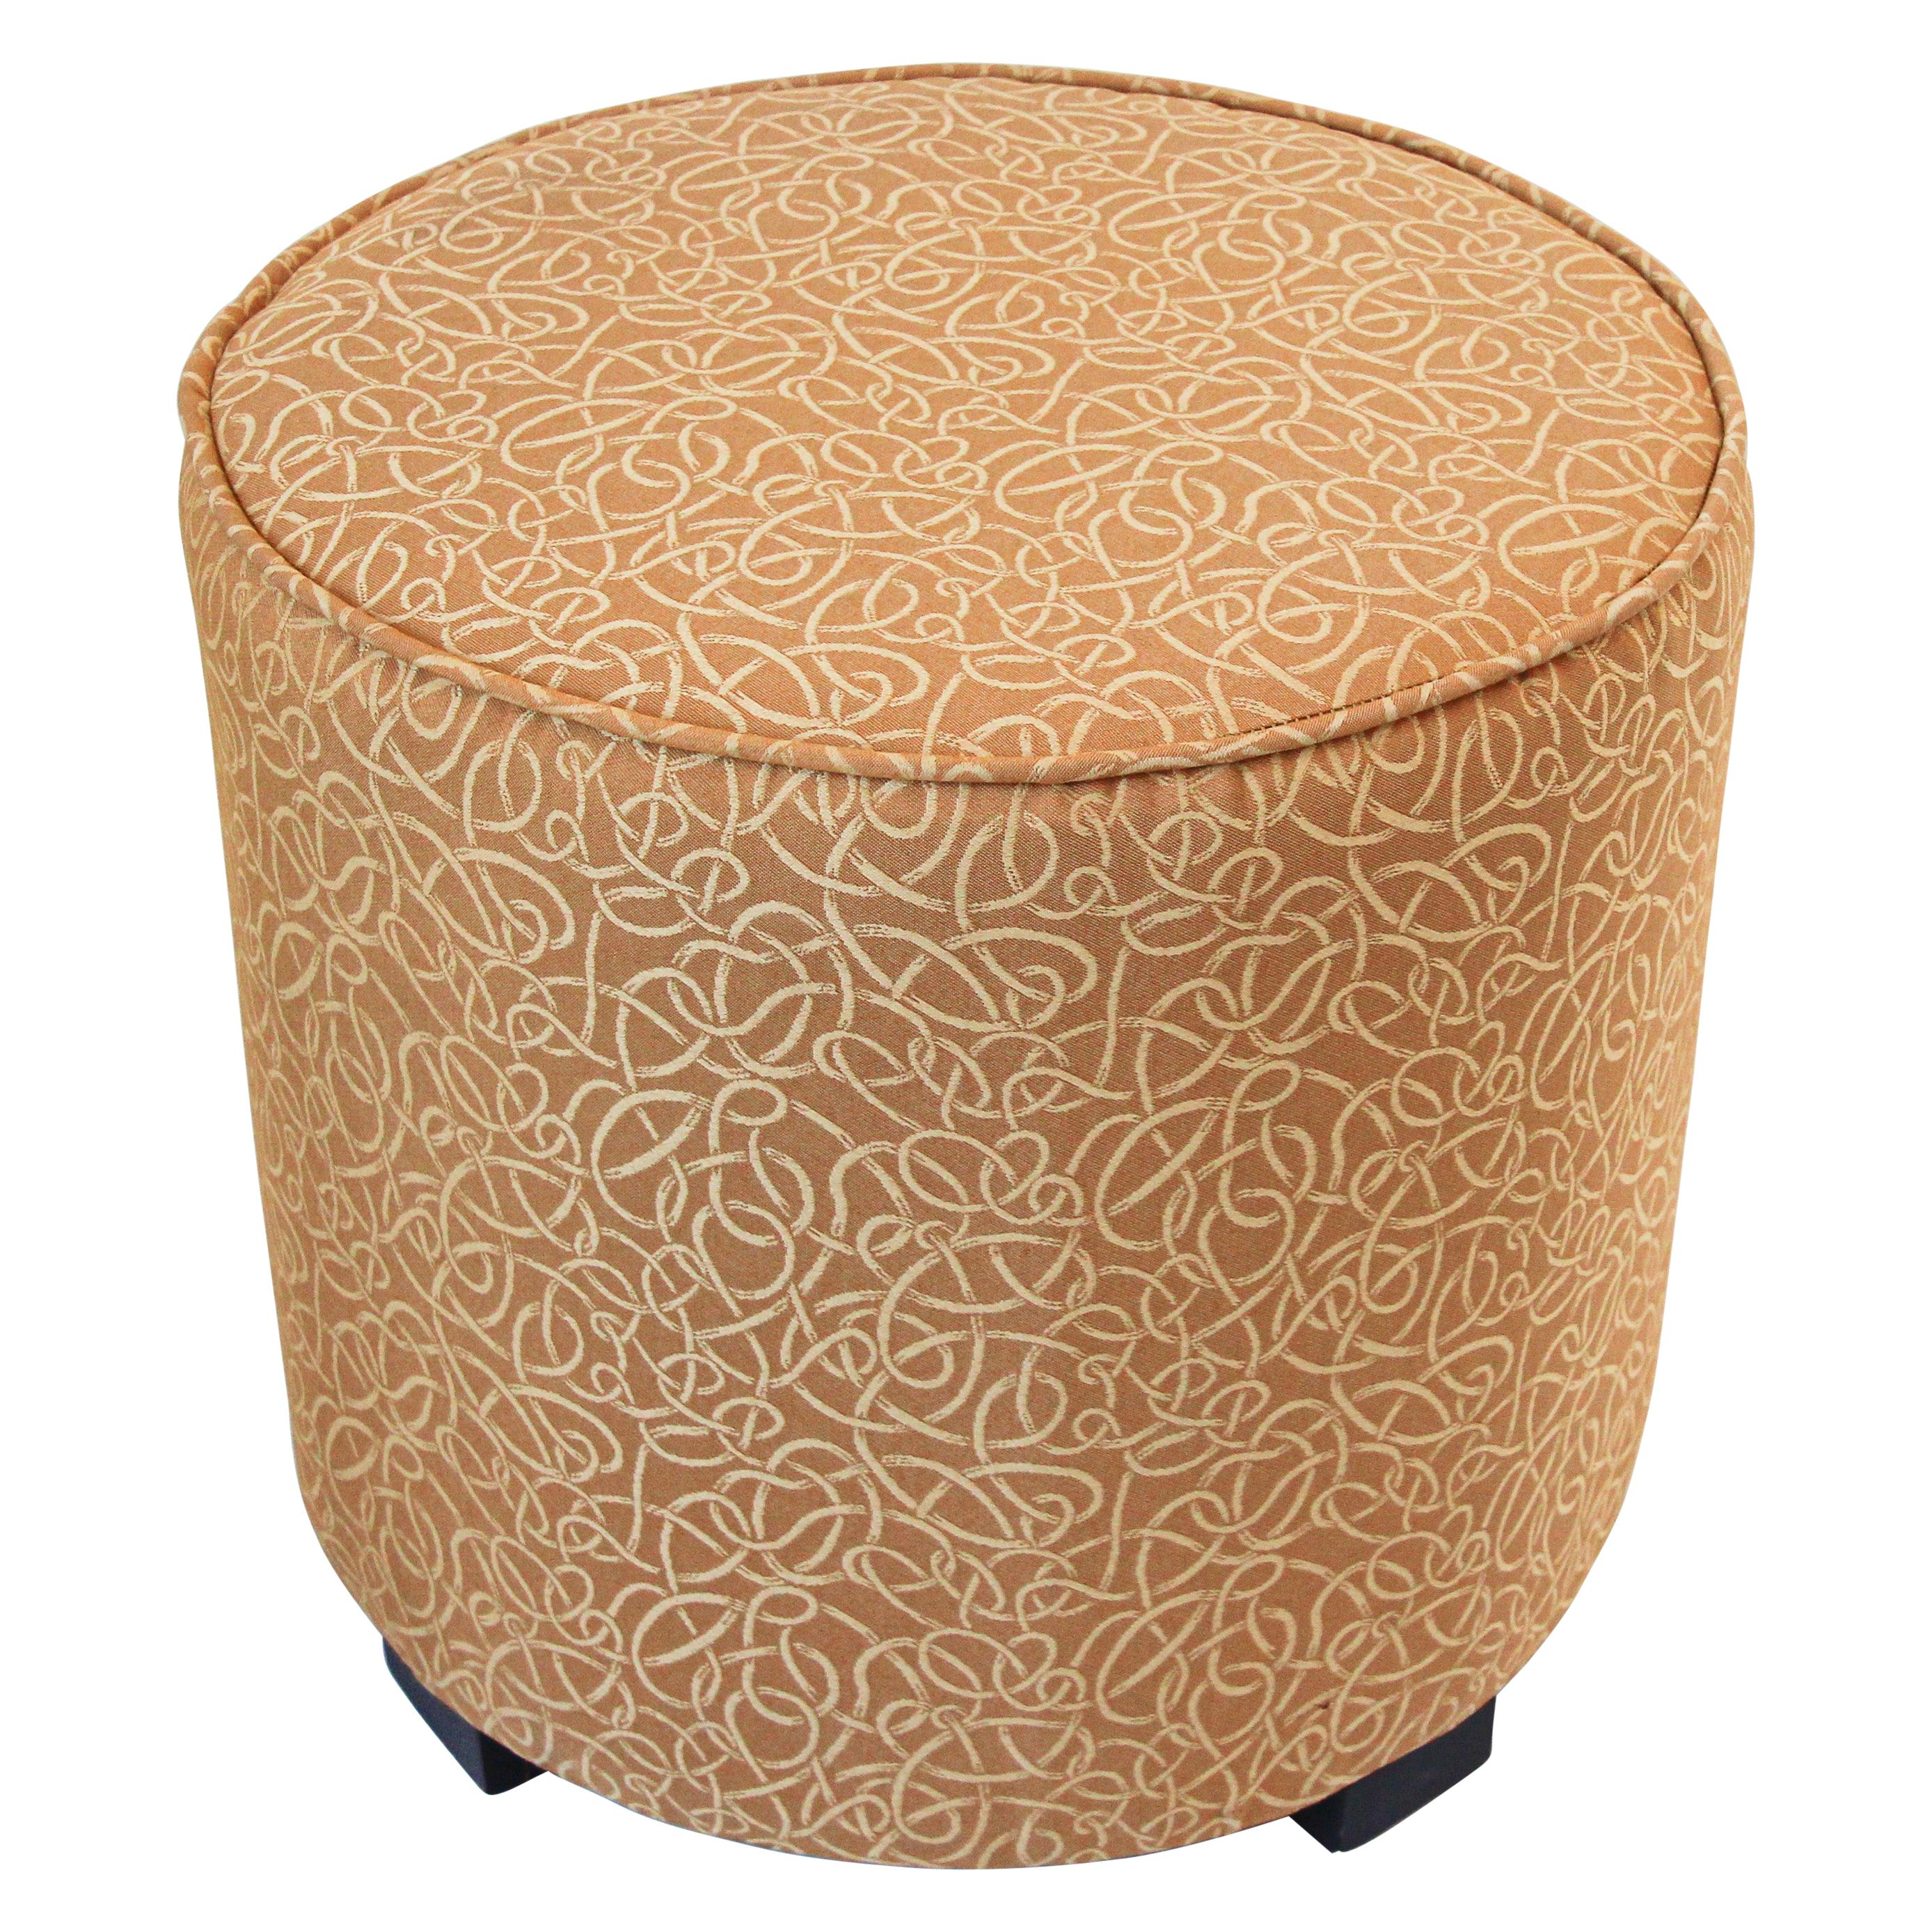 Post Modern Cylindrical Moroccan Pouf Upholstered in Gold Fabric